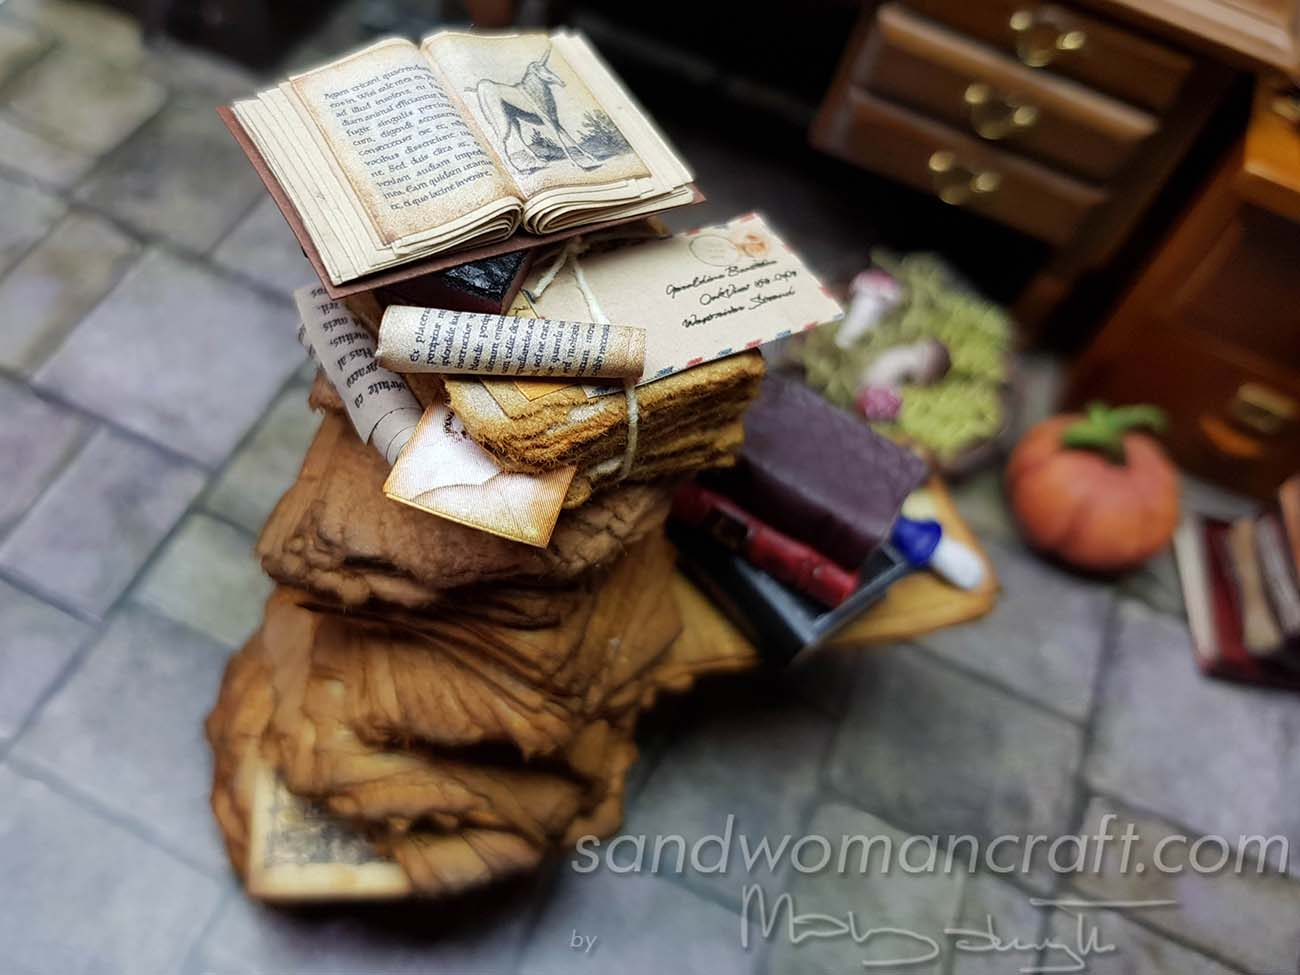 Mixed media stack with leather books, scrolls, envelopes